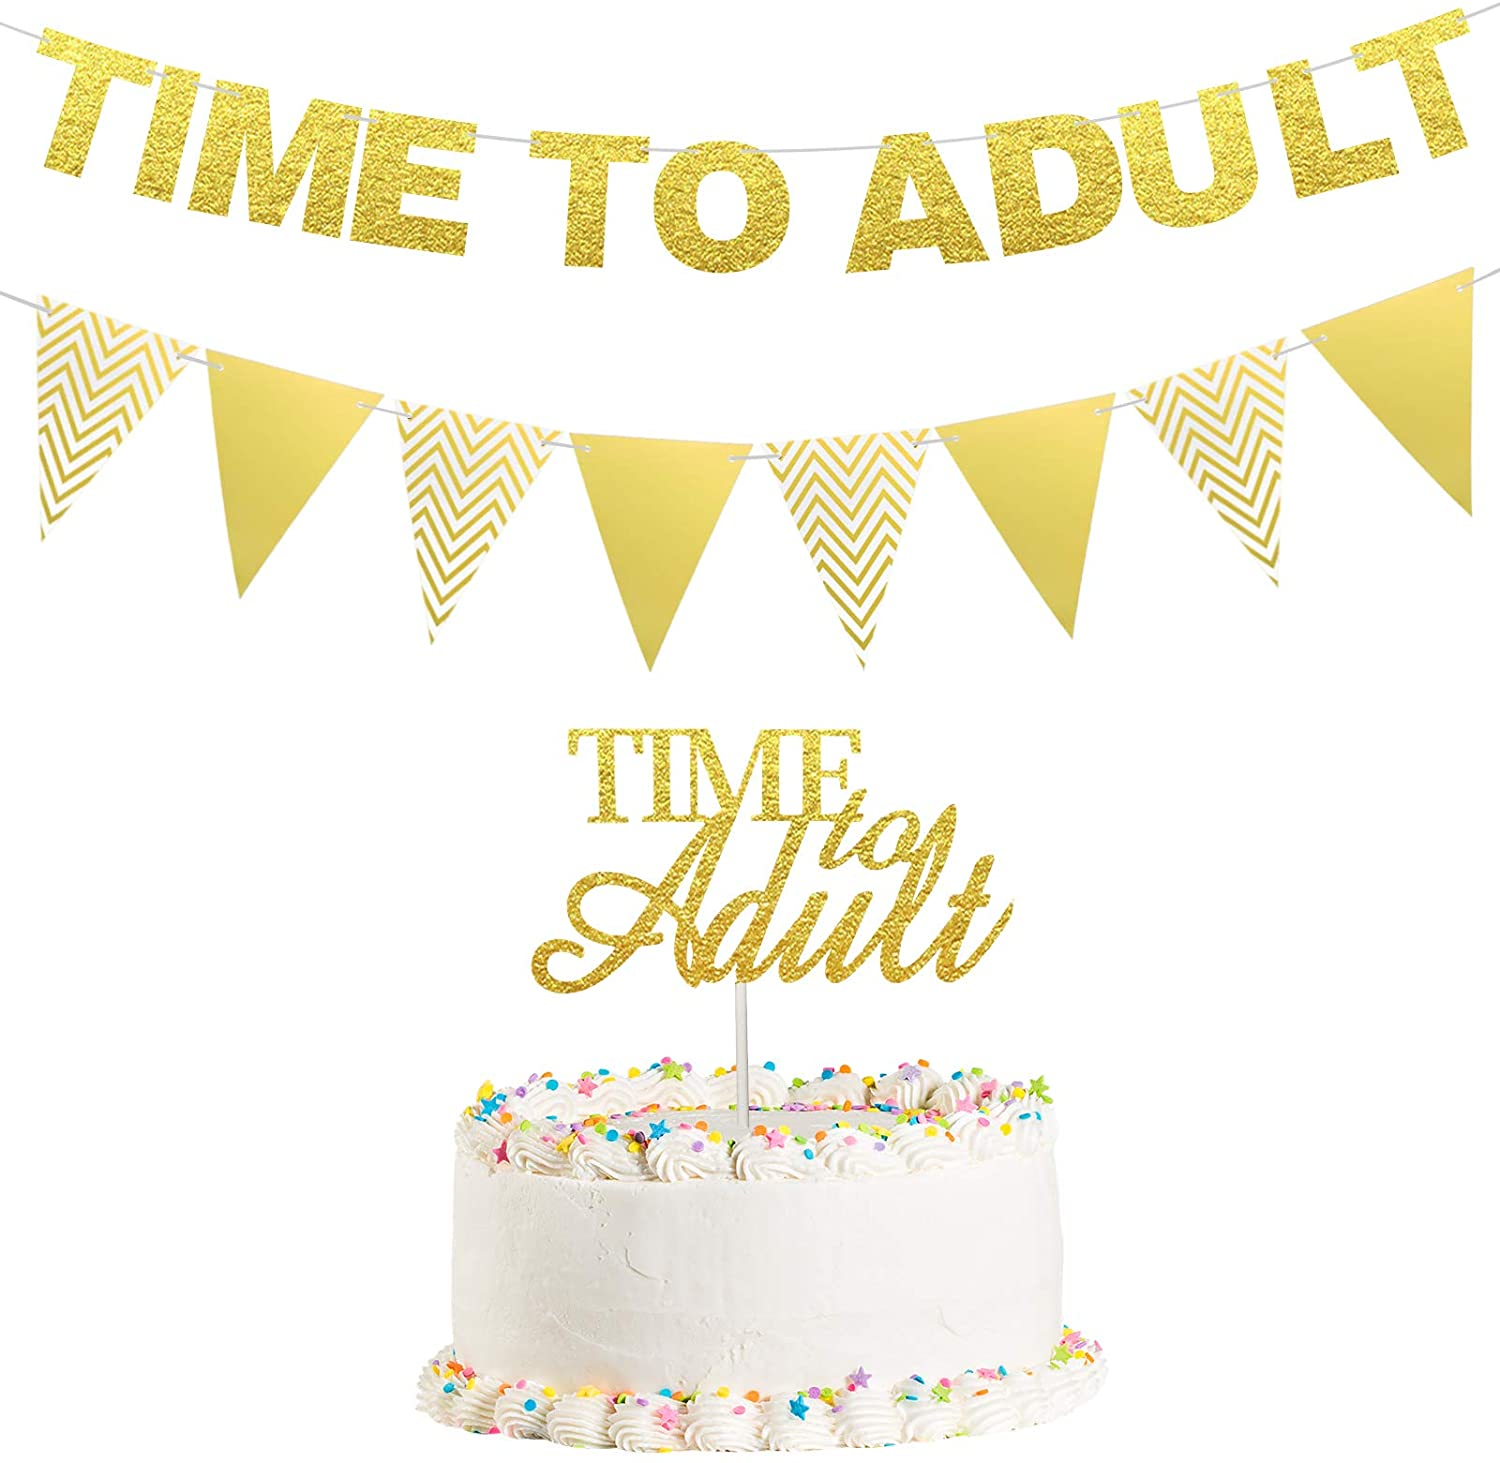 Time to Adult Banner Gold Glitter 18th Birthday Banner Triangle Flag Banner Time to Adult Cake Topper for Adult Birthday Party Supplies 18 Years Old Party Decorations, Pre-Strung